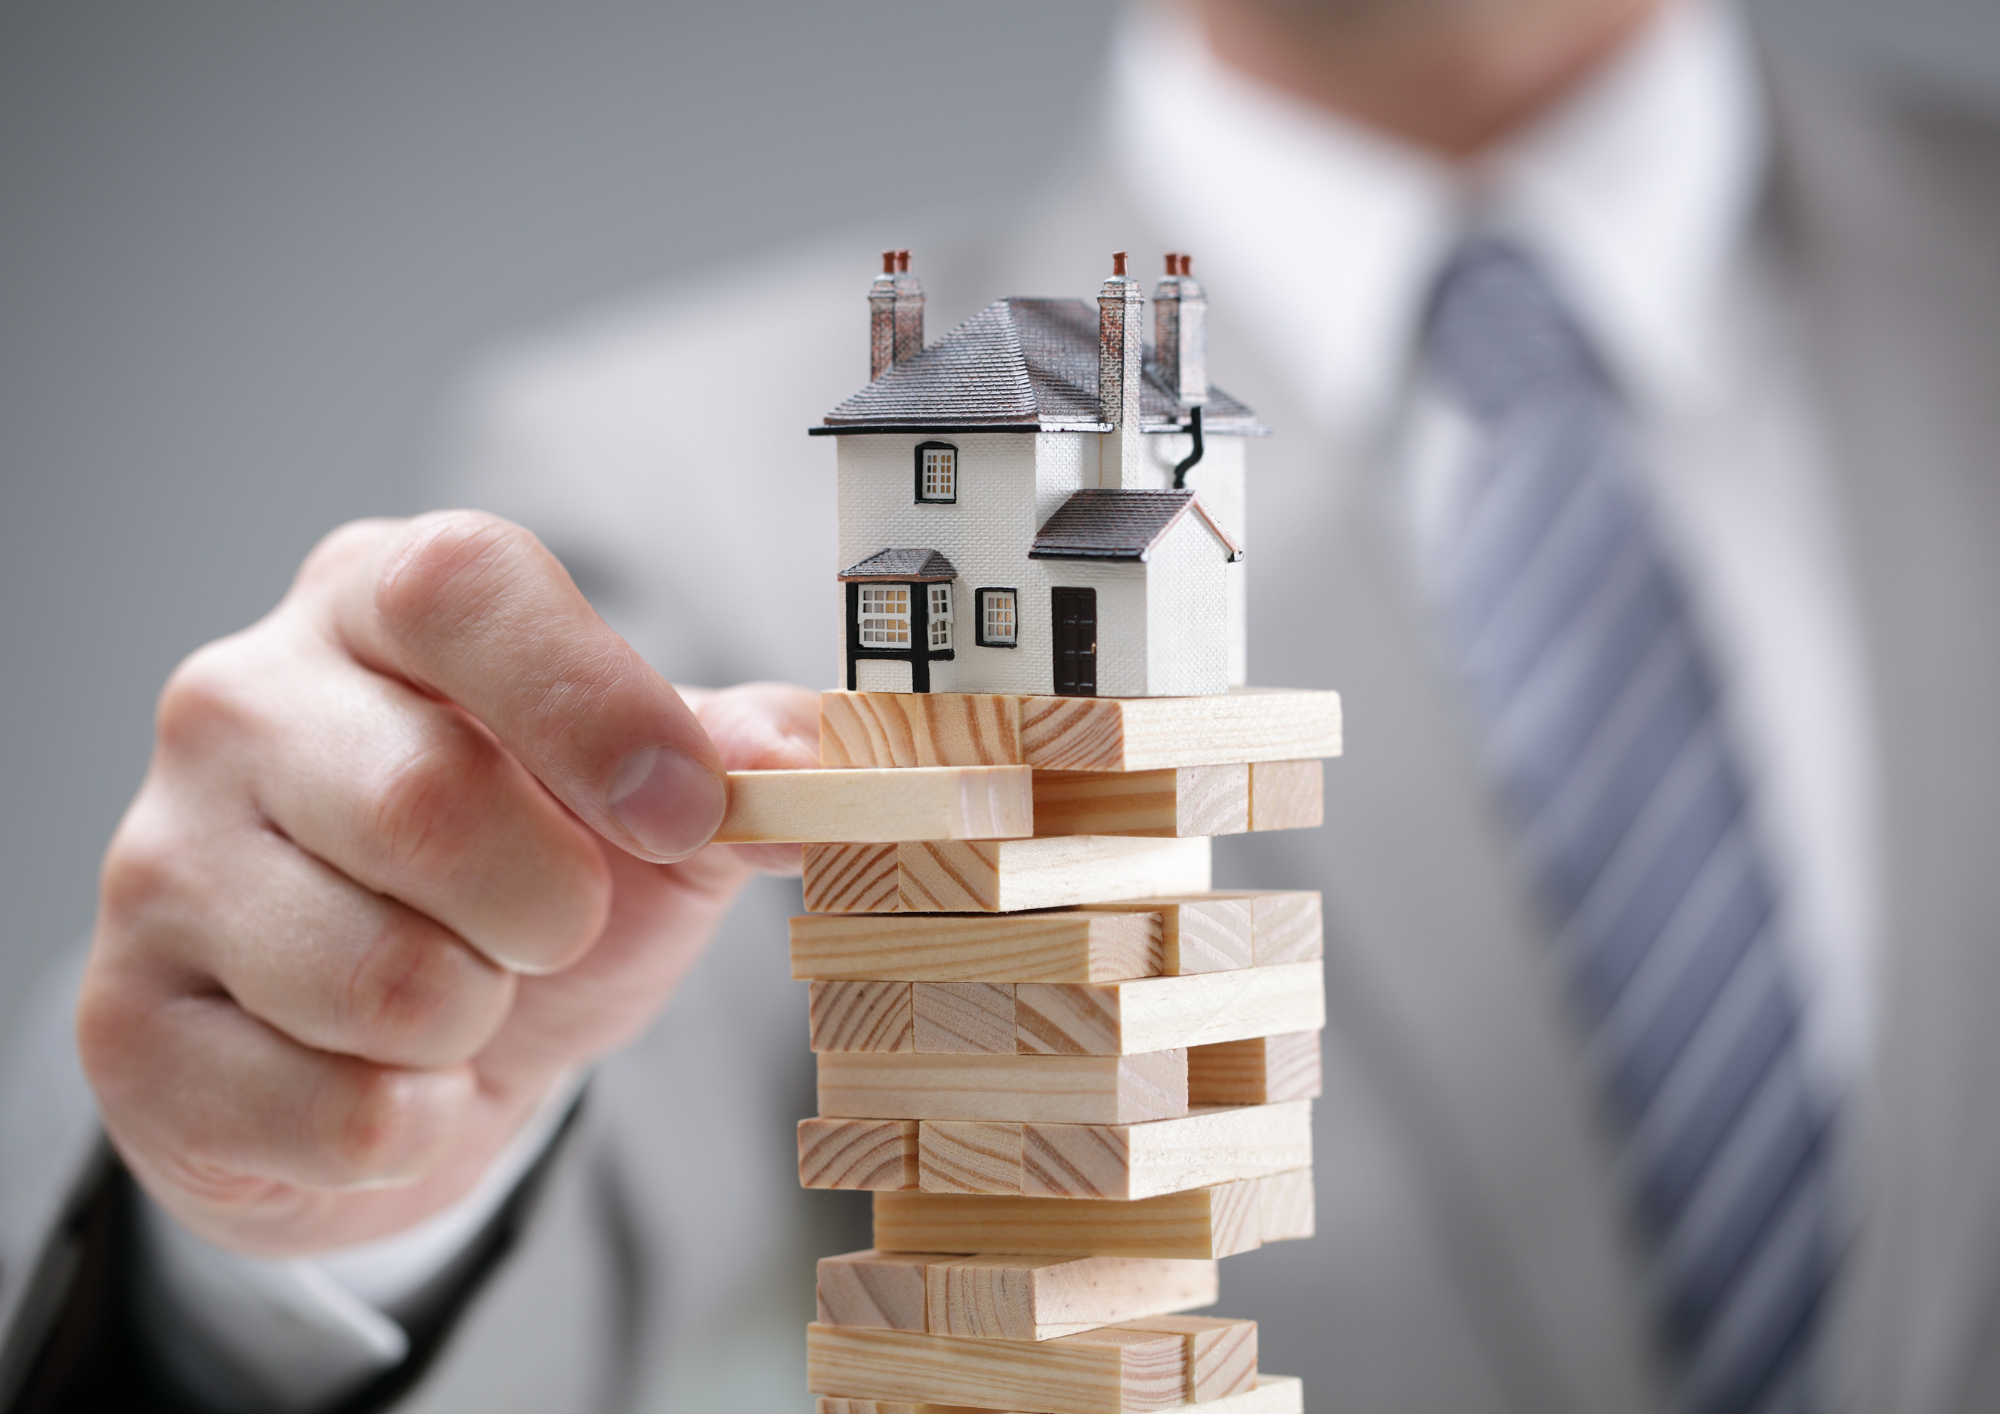 UK PROPERTY MARKET BOOMS, BUT EXPERTS CONSIDER AFTERMATH OF GOVERNMENT STIMULUS ENDING.